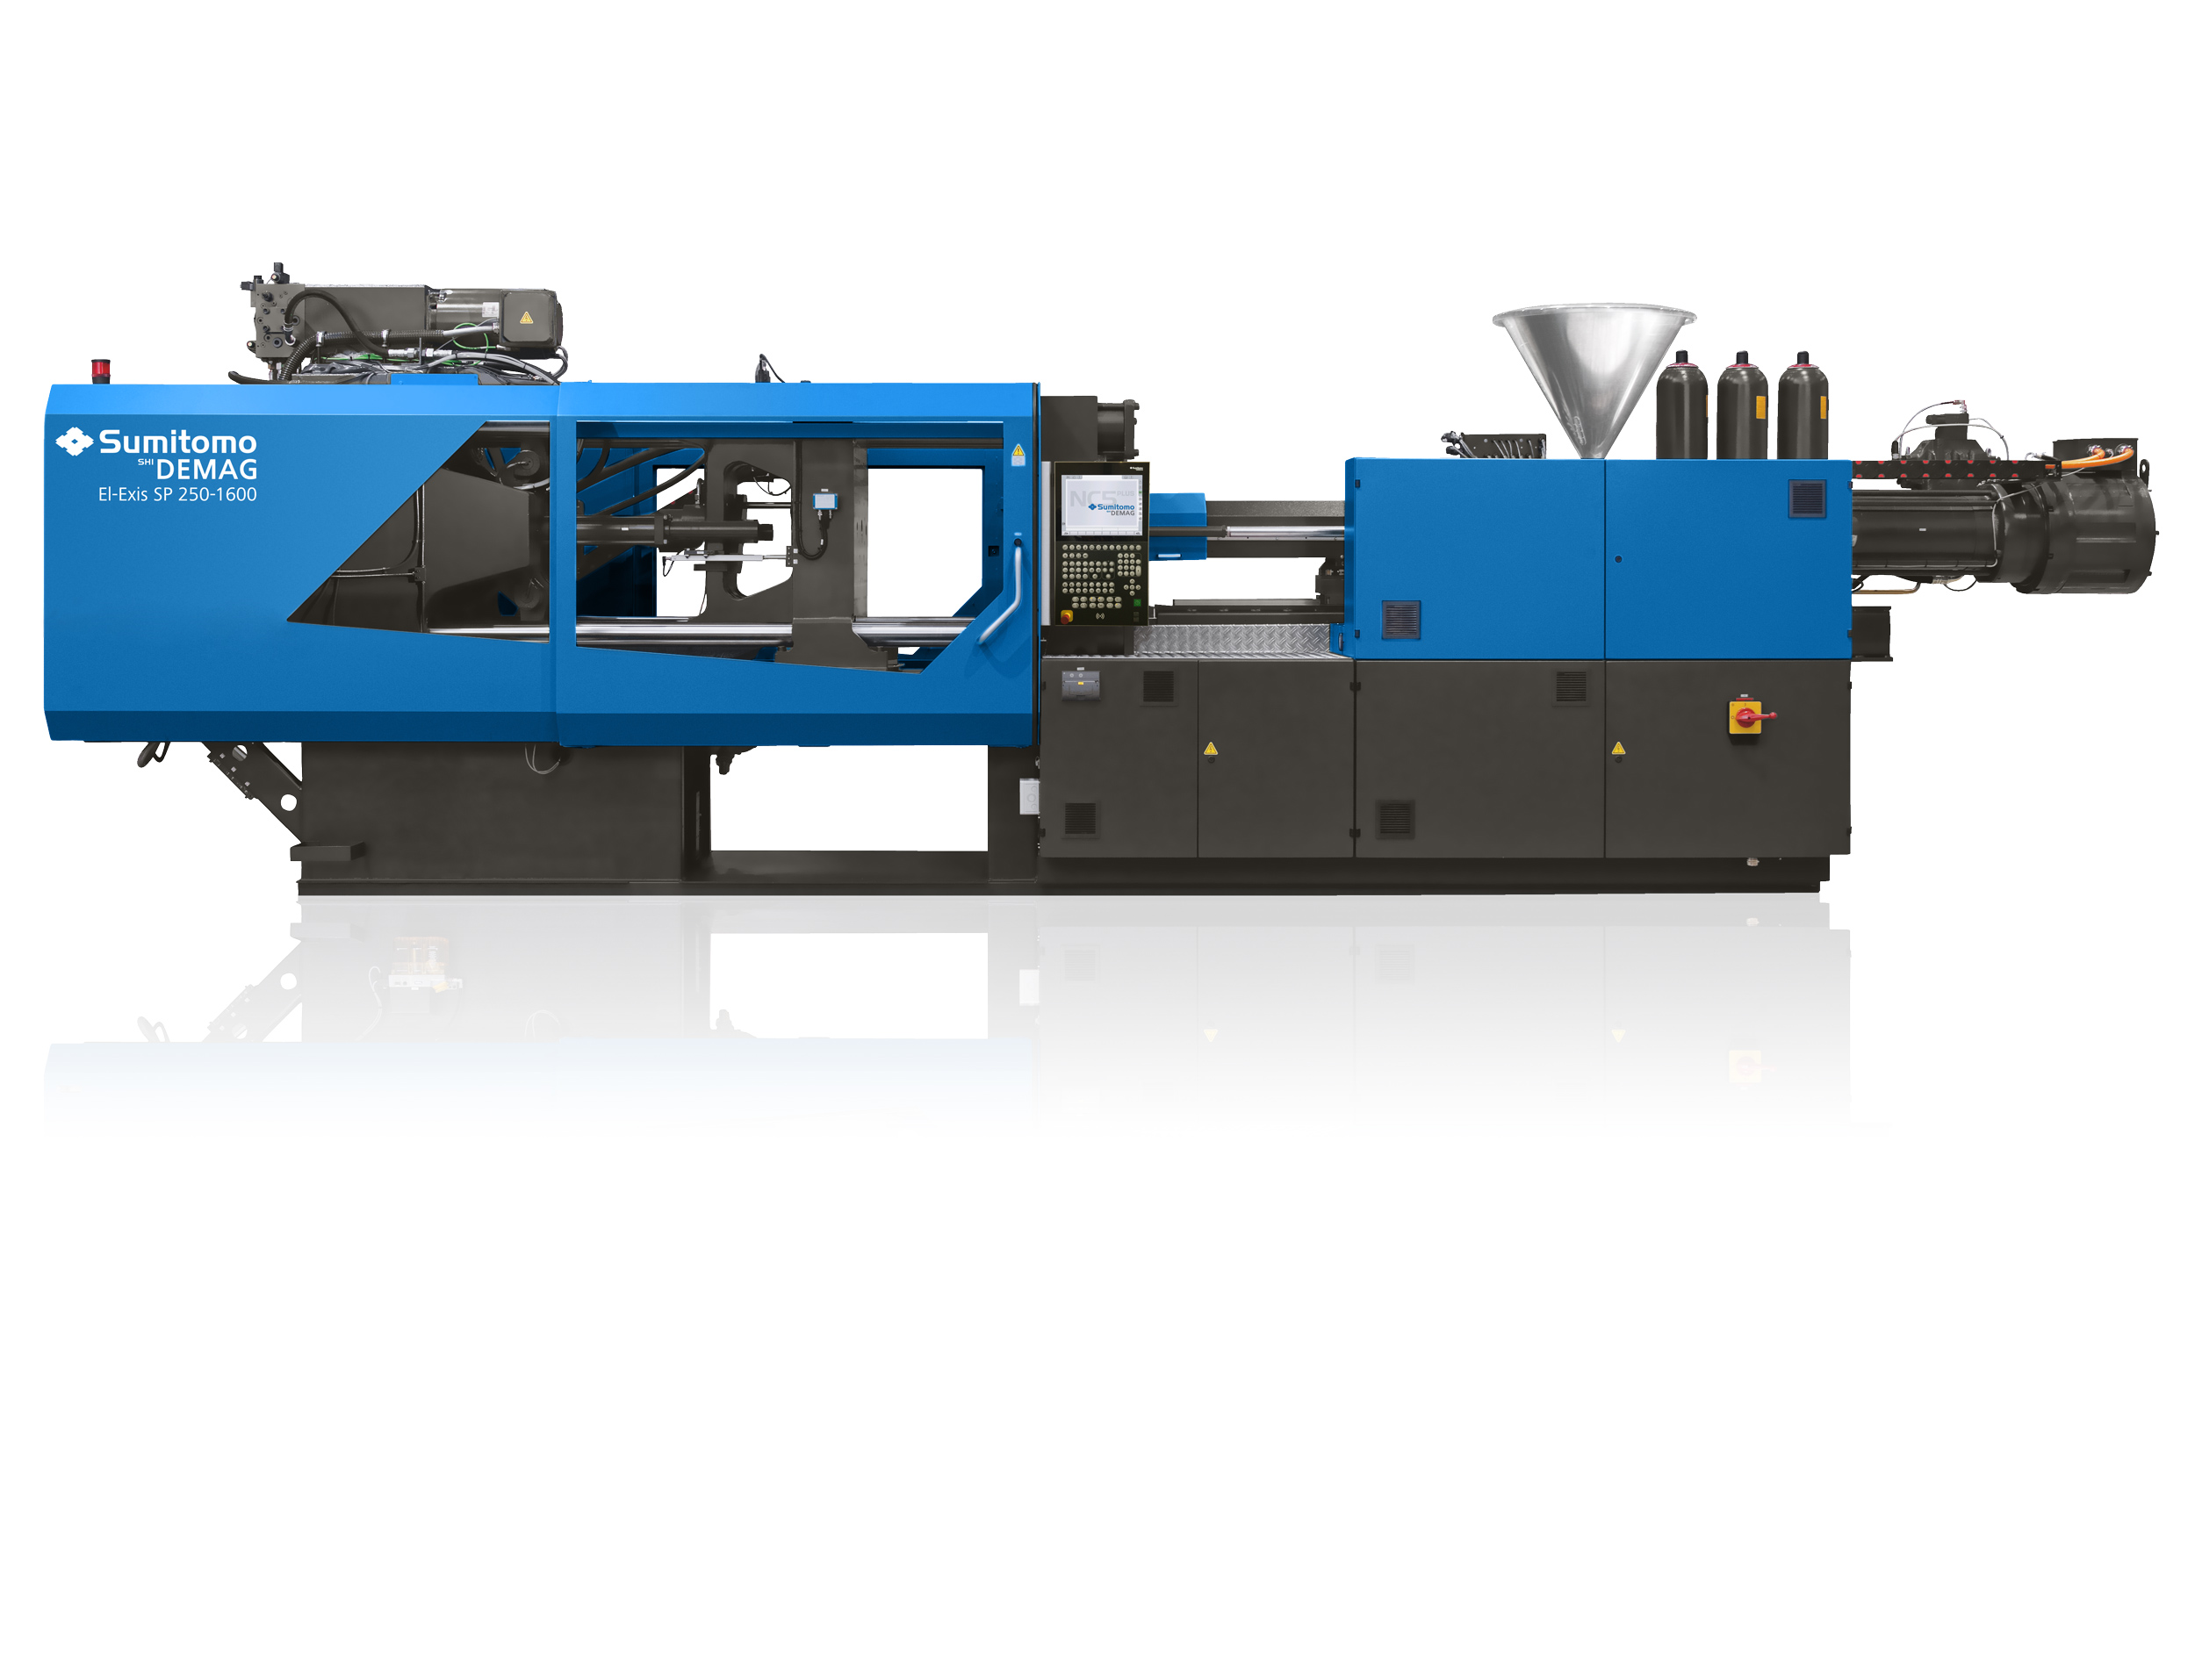 The El-Exis SP can be viewed at Fakuma together with the material-saving injection compression moulding of thin-walled lids decorated with in-mould labels (Source: Sumitomo (SHI) Demag)